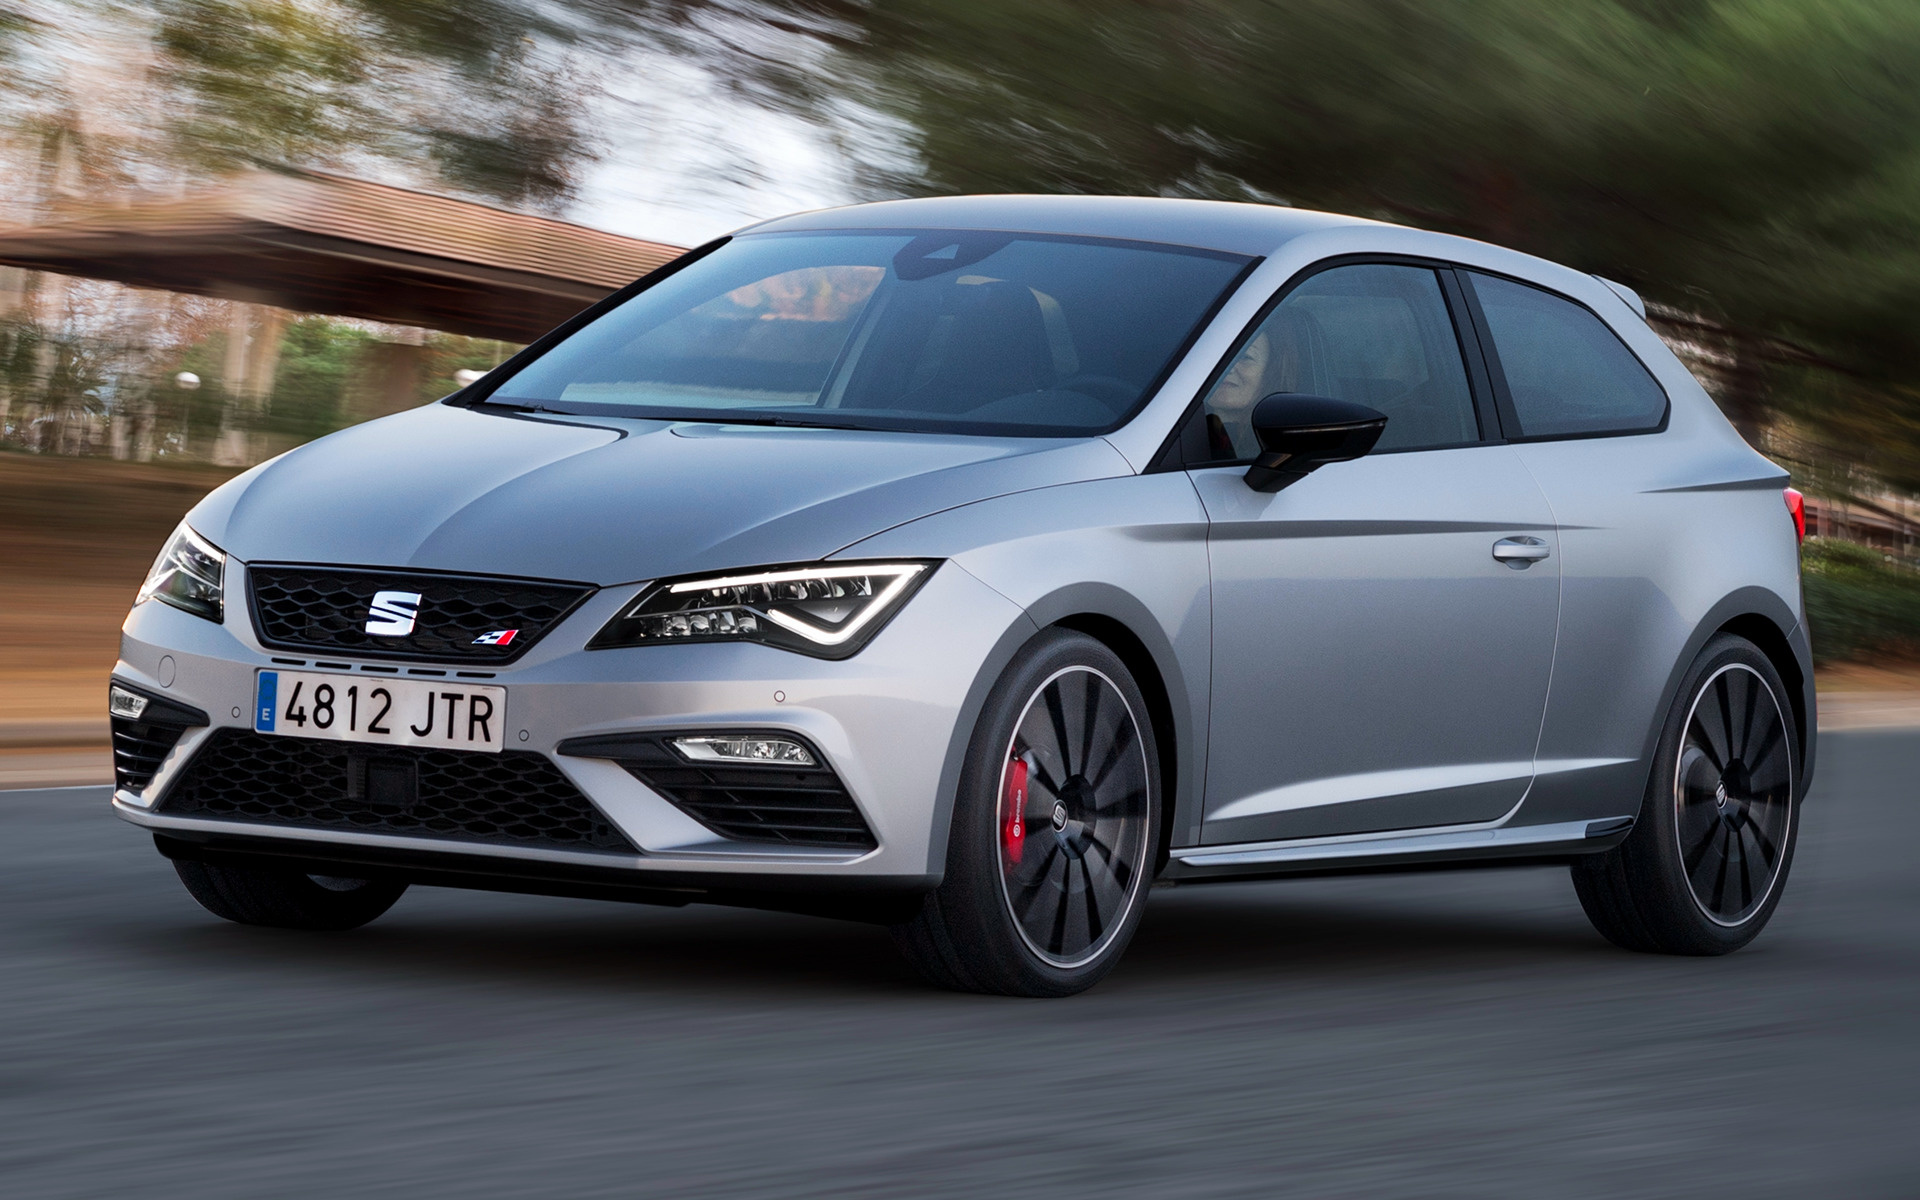 2017 Seat Leon Sc Cupra 300 Wallpapers And Hd Images Car